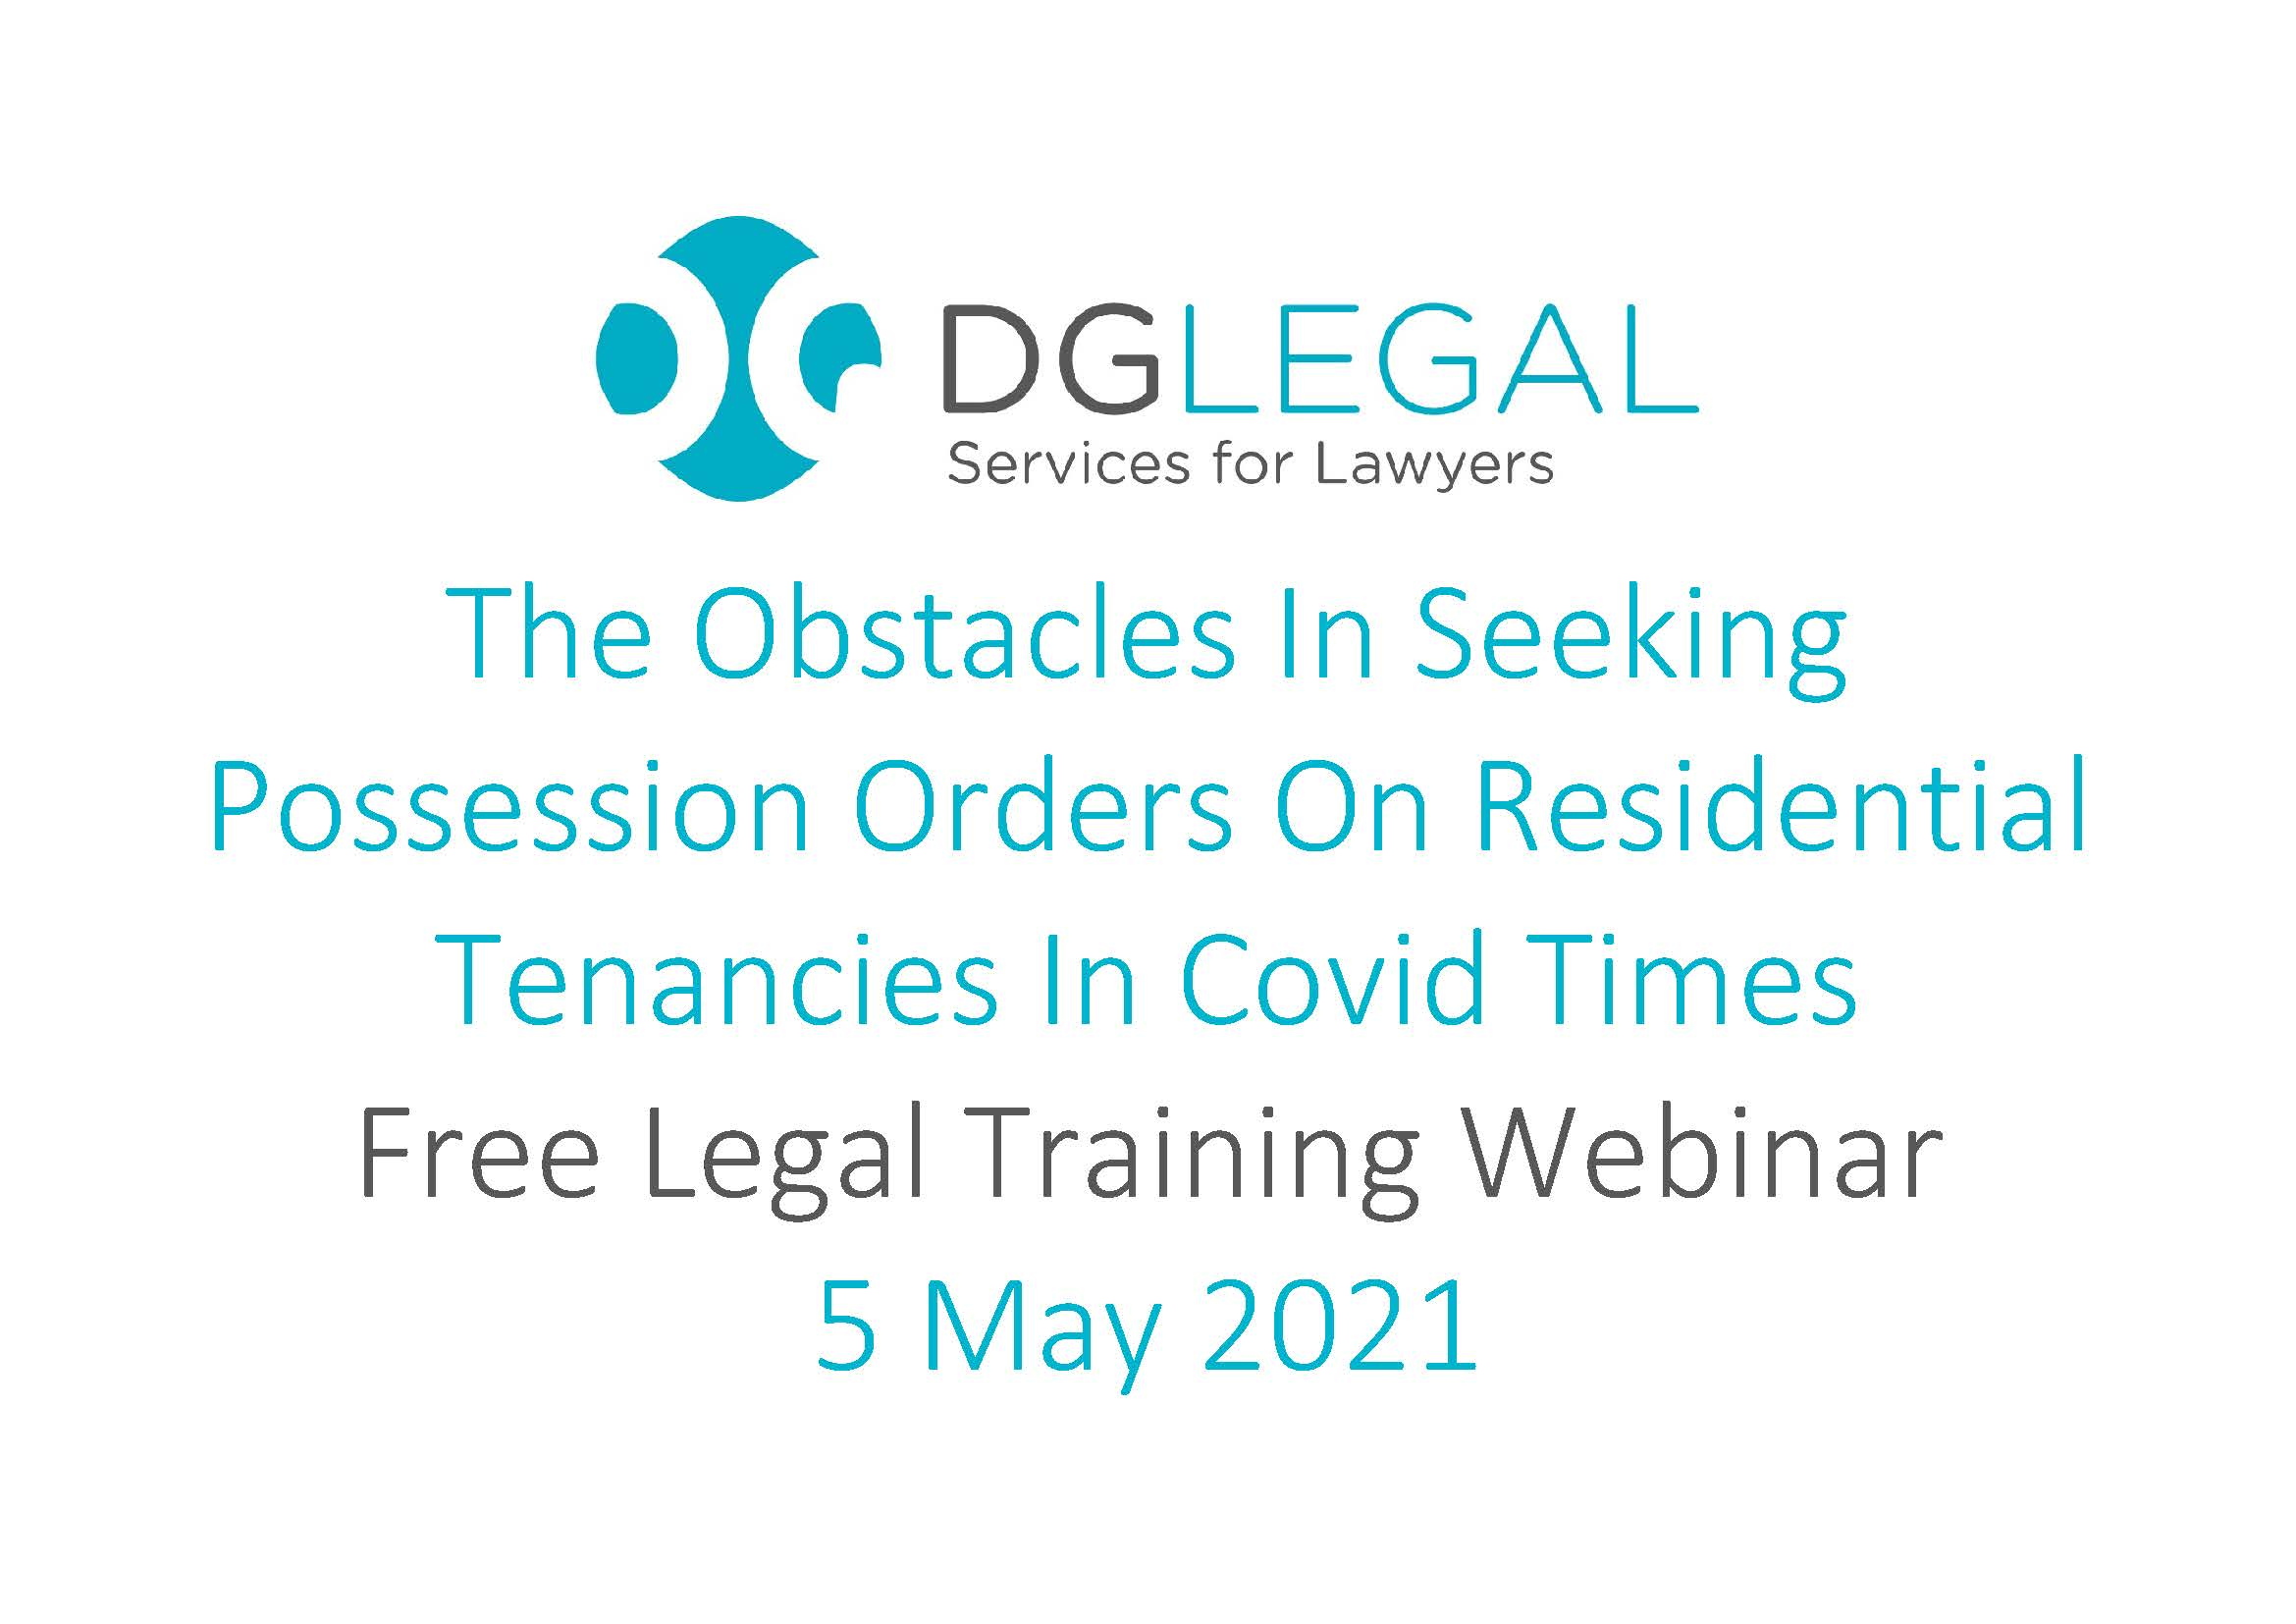 The Obstacles In Seeking Possession Orders On Residential Tenancies In Covid Times